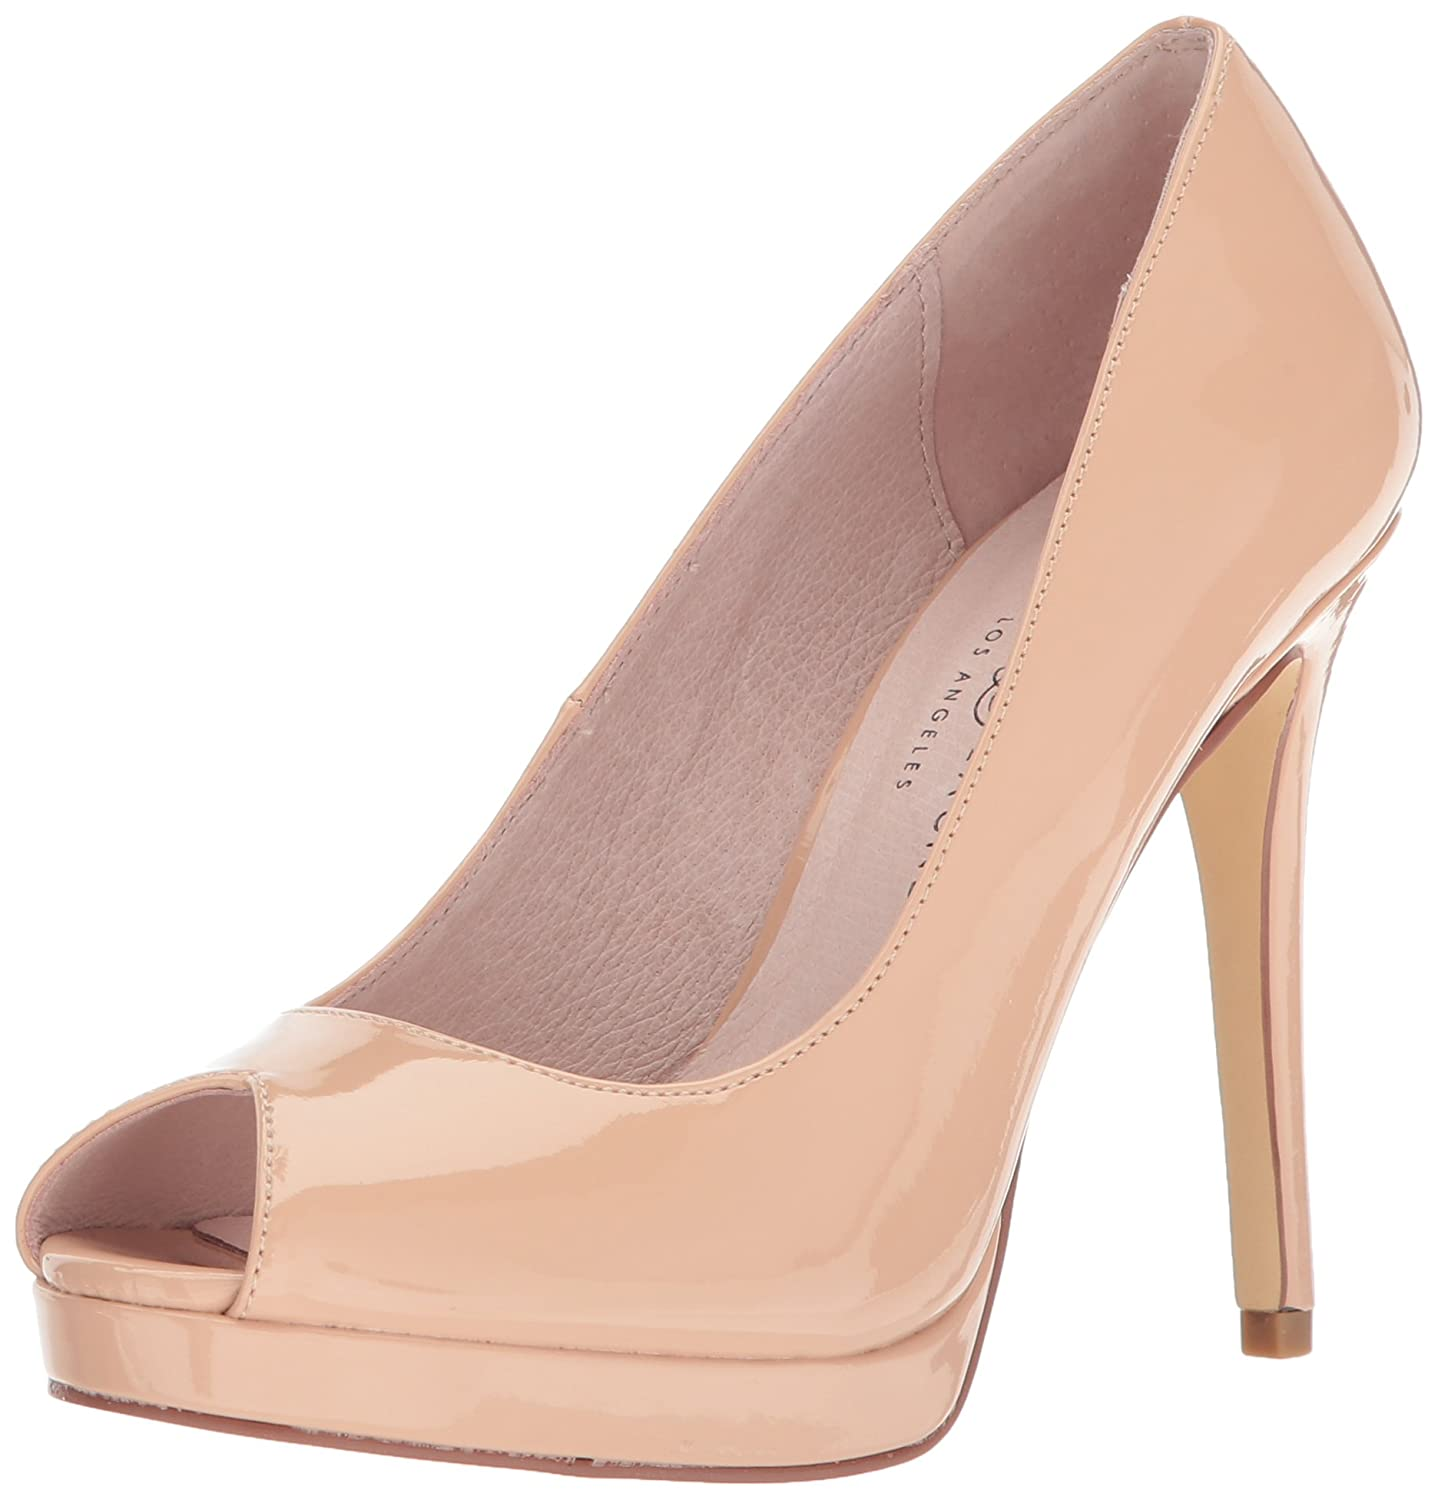 2977d155c0e Chinese Laundry Women's Fia Pump: Buy Online at Low Prices in India ...